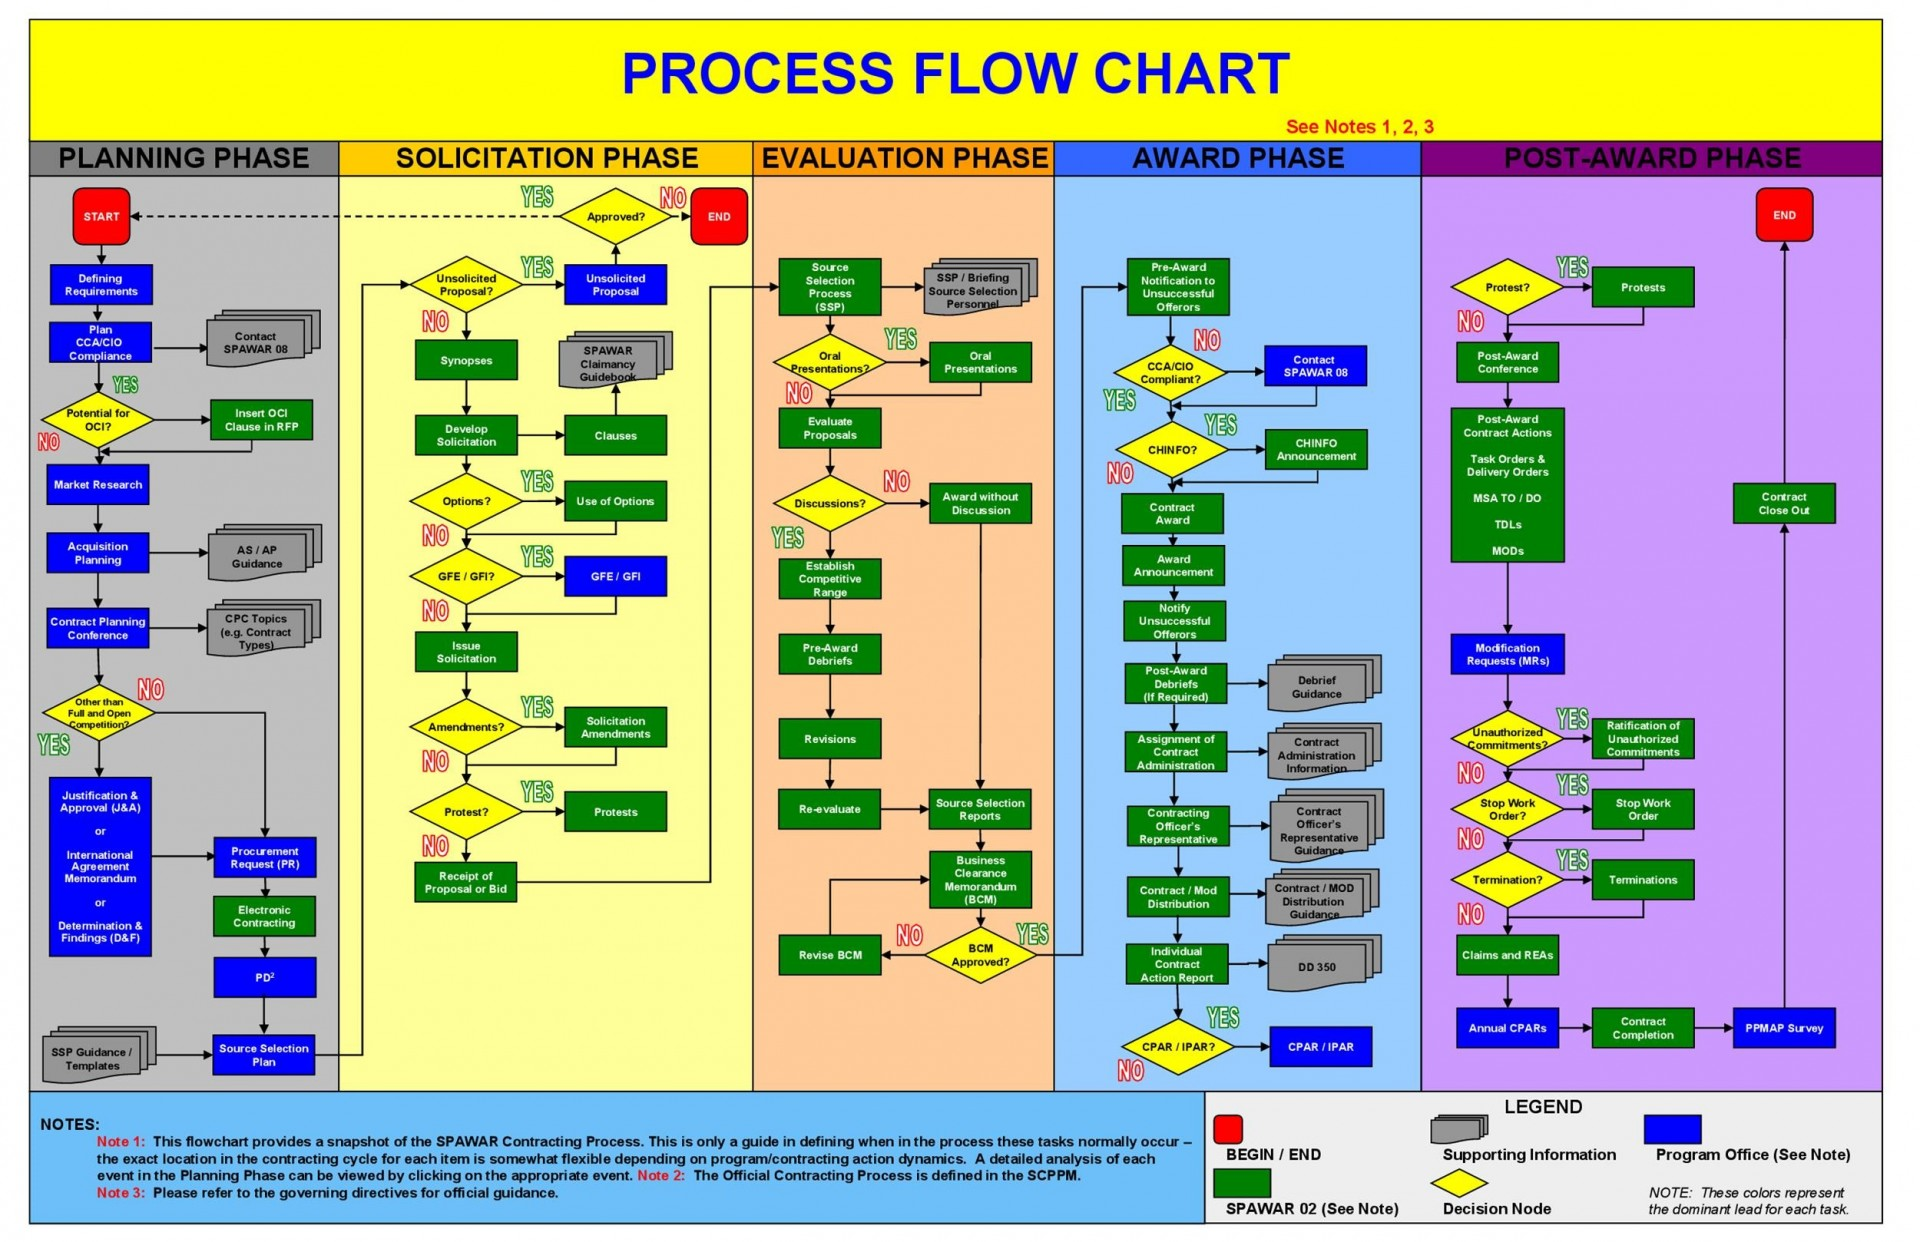 003 Unforgettable Working Flow Chart Template Idea  Proces Manufacturing Word Free Download Workflow1920